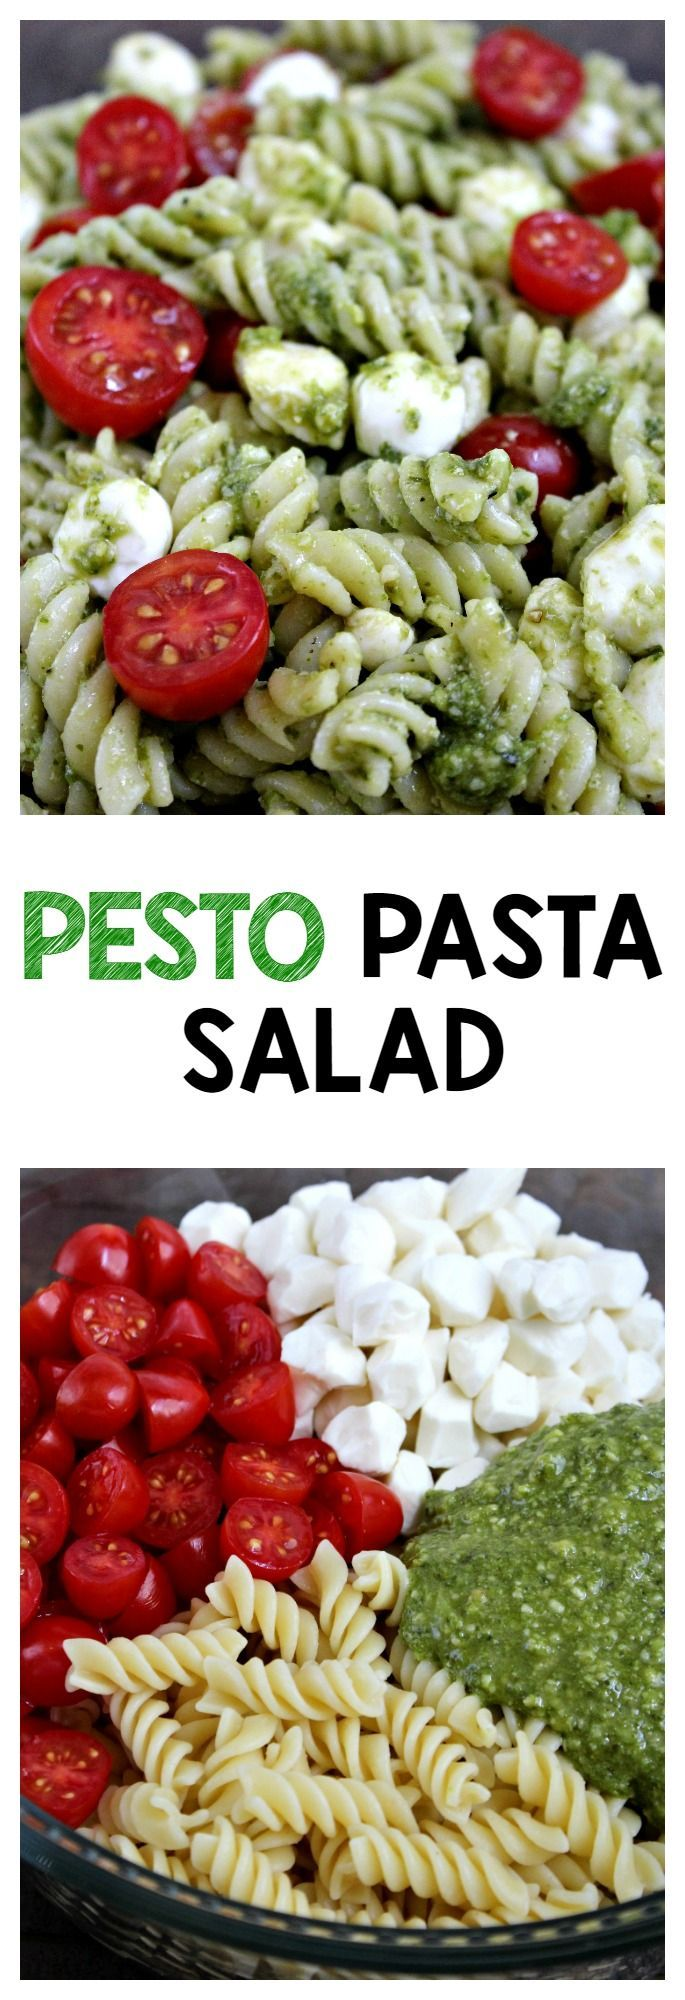 Pasta Salad is the perfect quick and tasty side dish! Made with flavorful pesto, spiral noodles, fresh mozzarella and juicy cherry tomatoes.